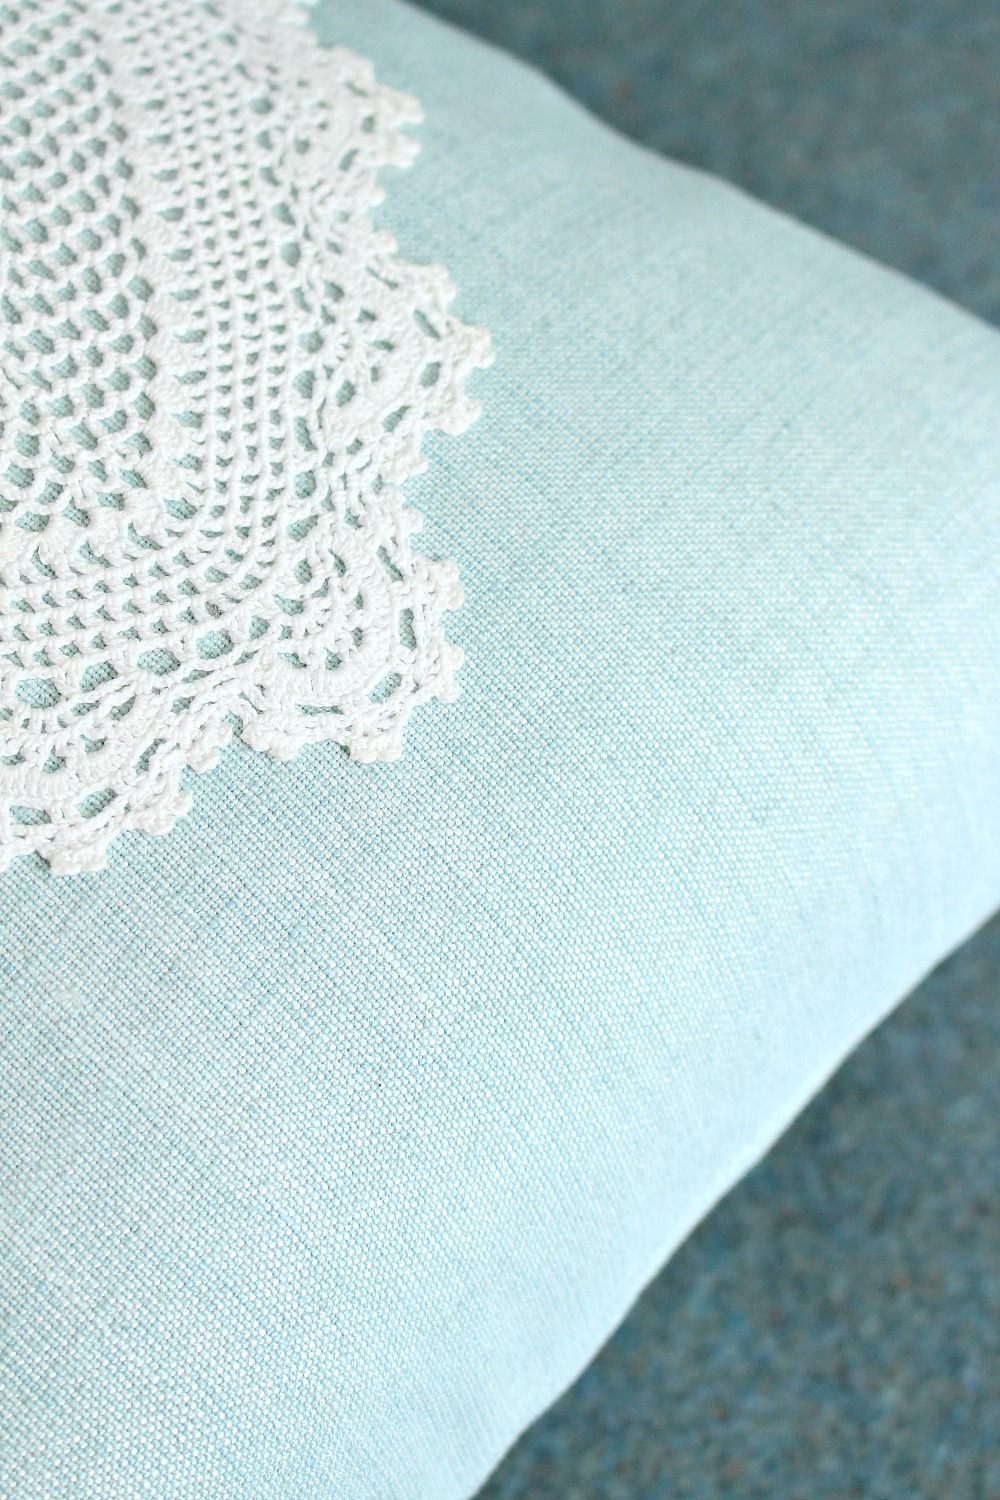 DIY modern doily project